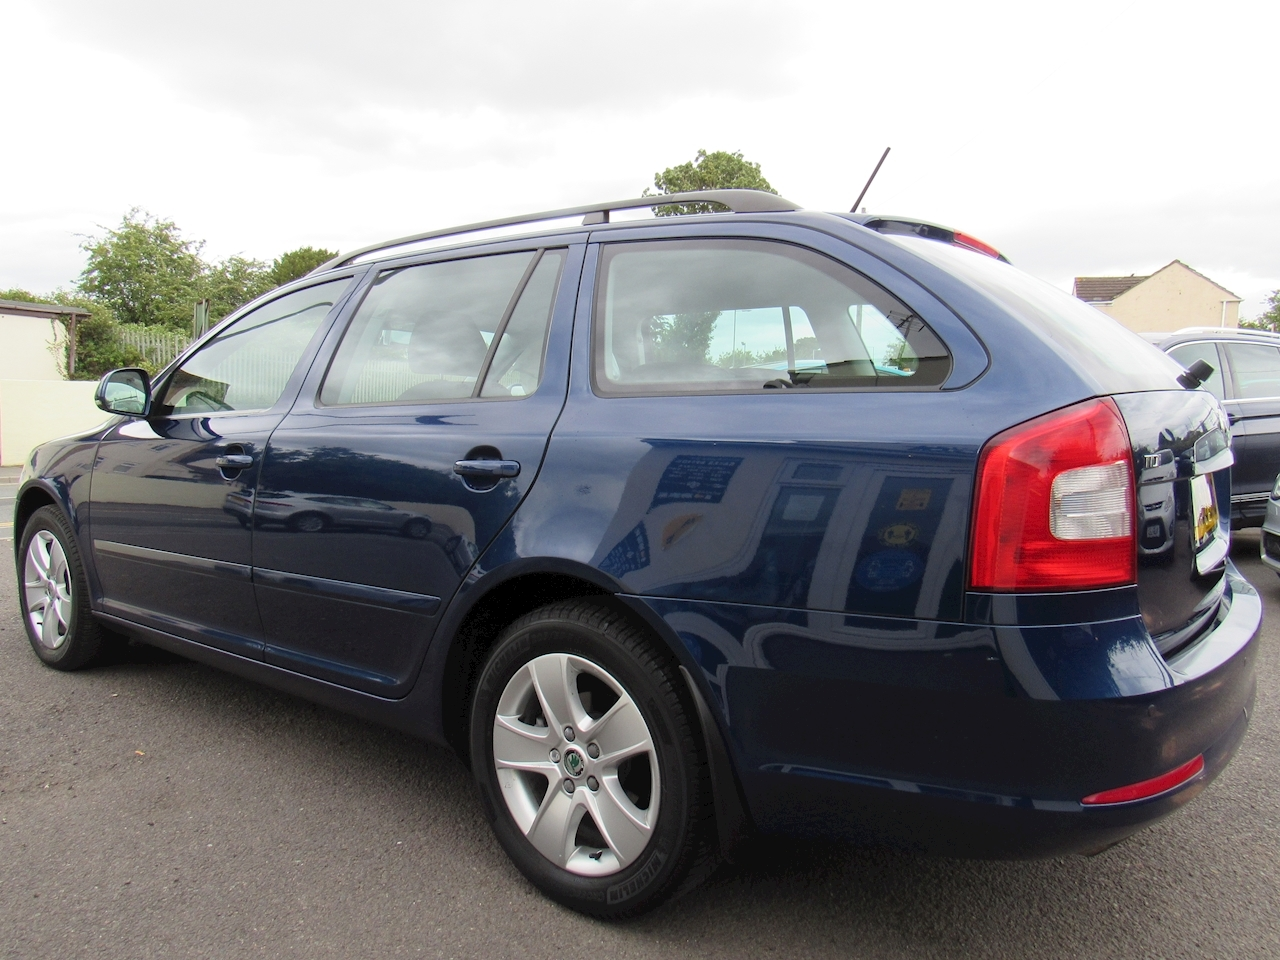 Skoda Octavia Elegance Tdi Cr Estate 1.6 Manual Diesel